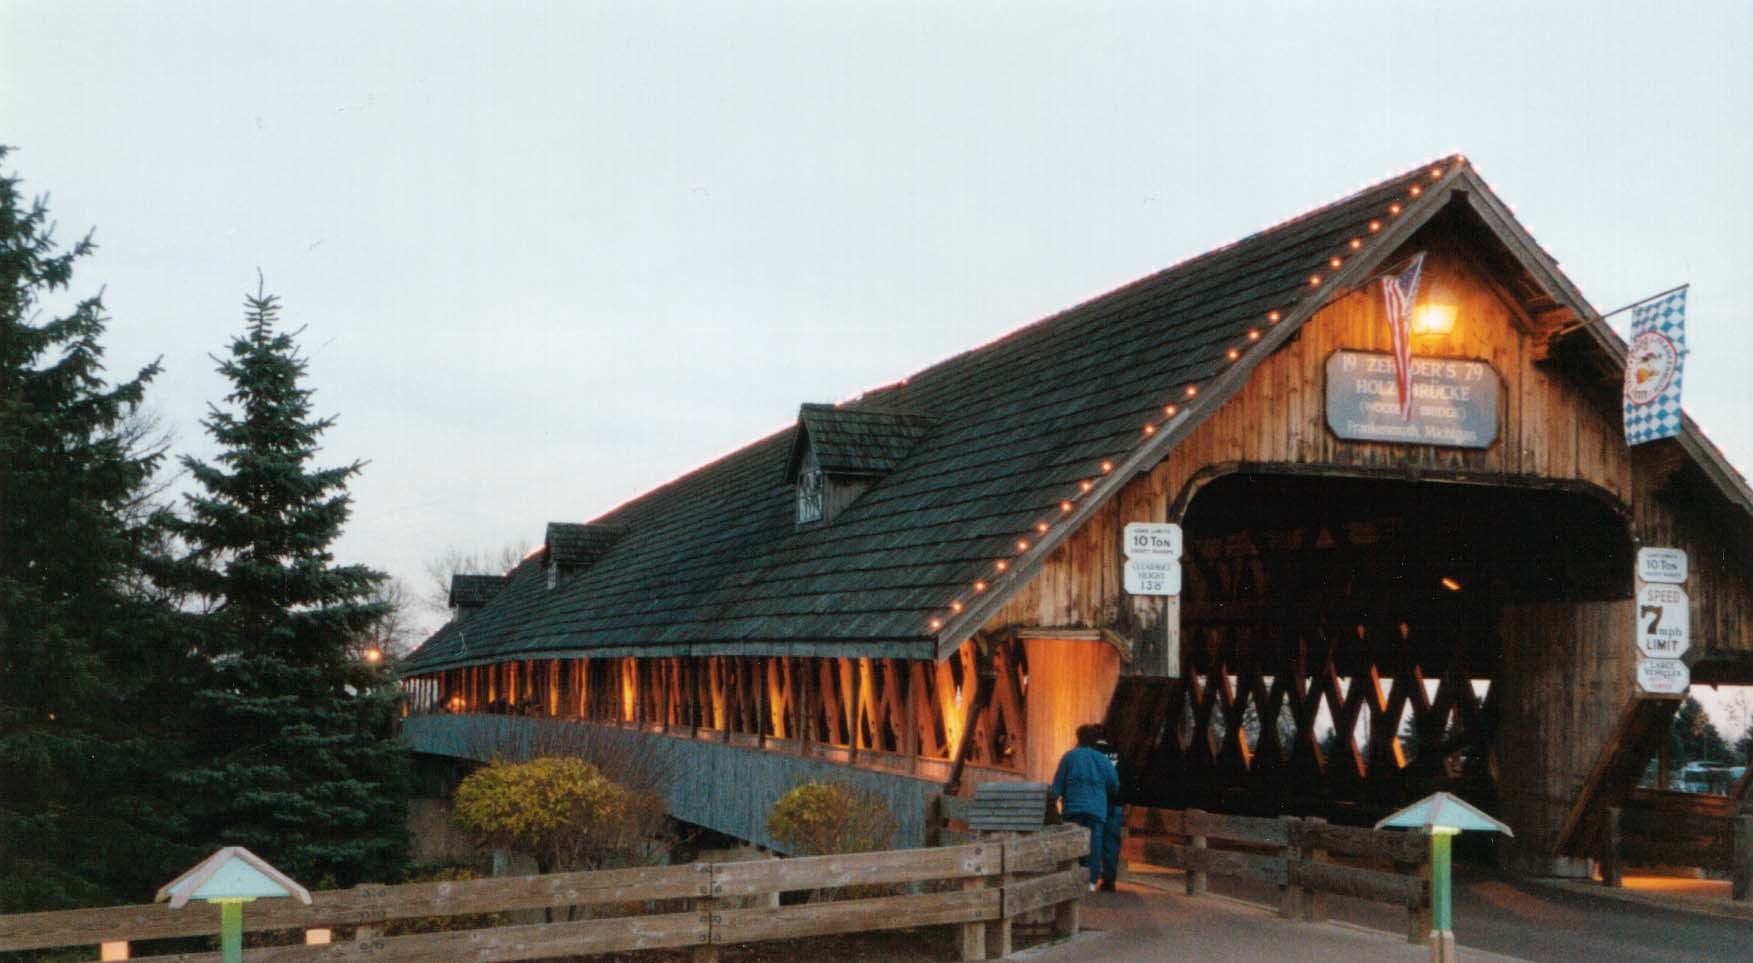 The Challenge Behind Building the Covered Bridge at Bavarian Inn Lodge